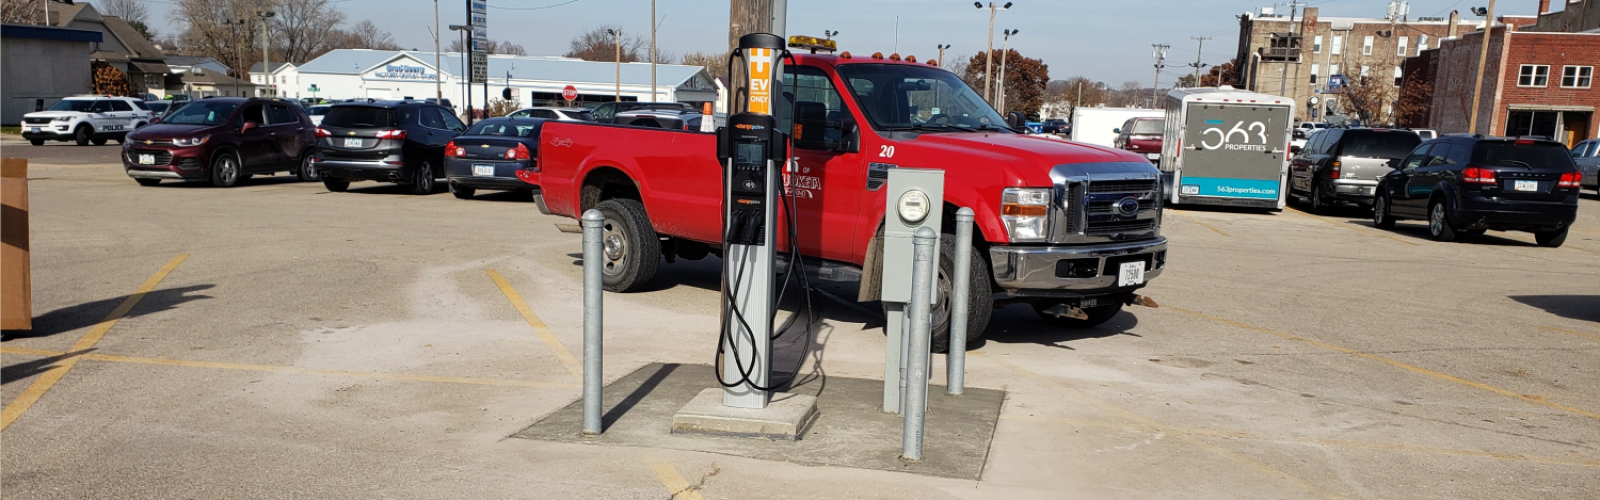 electric vehicle charger in public parking lot